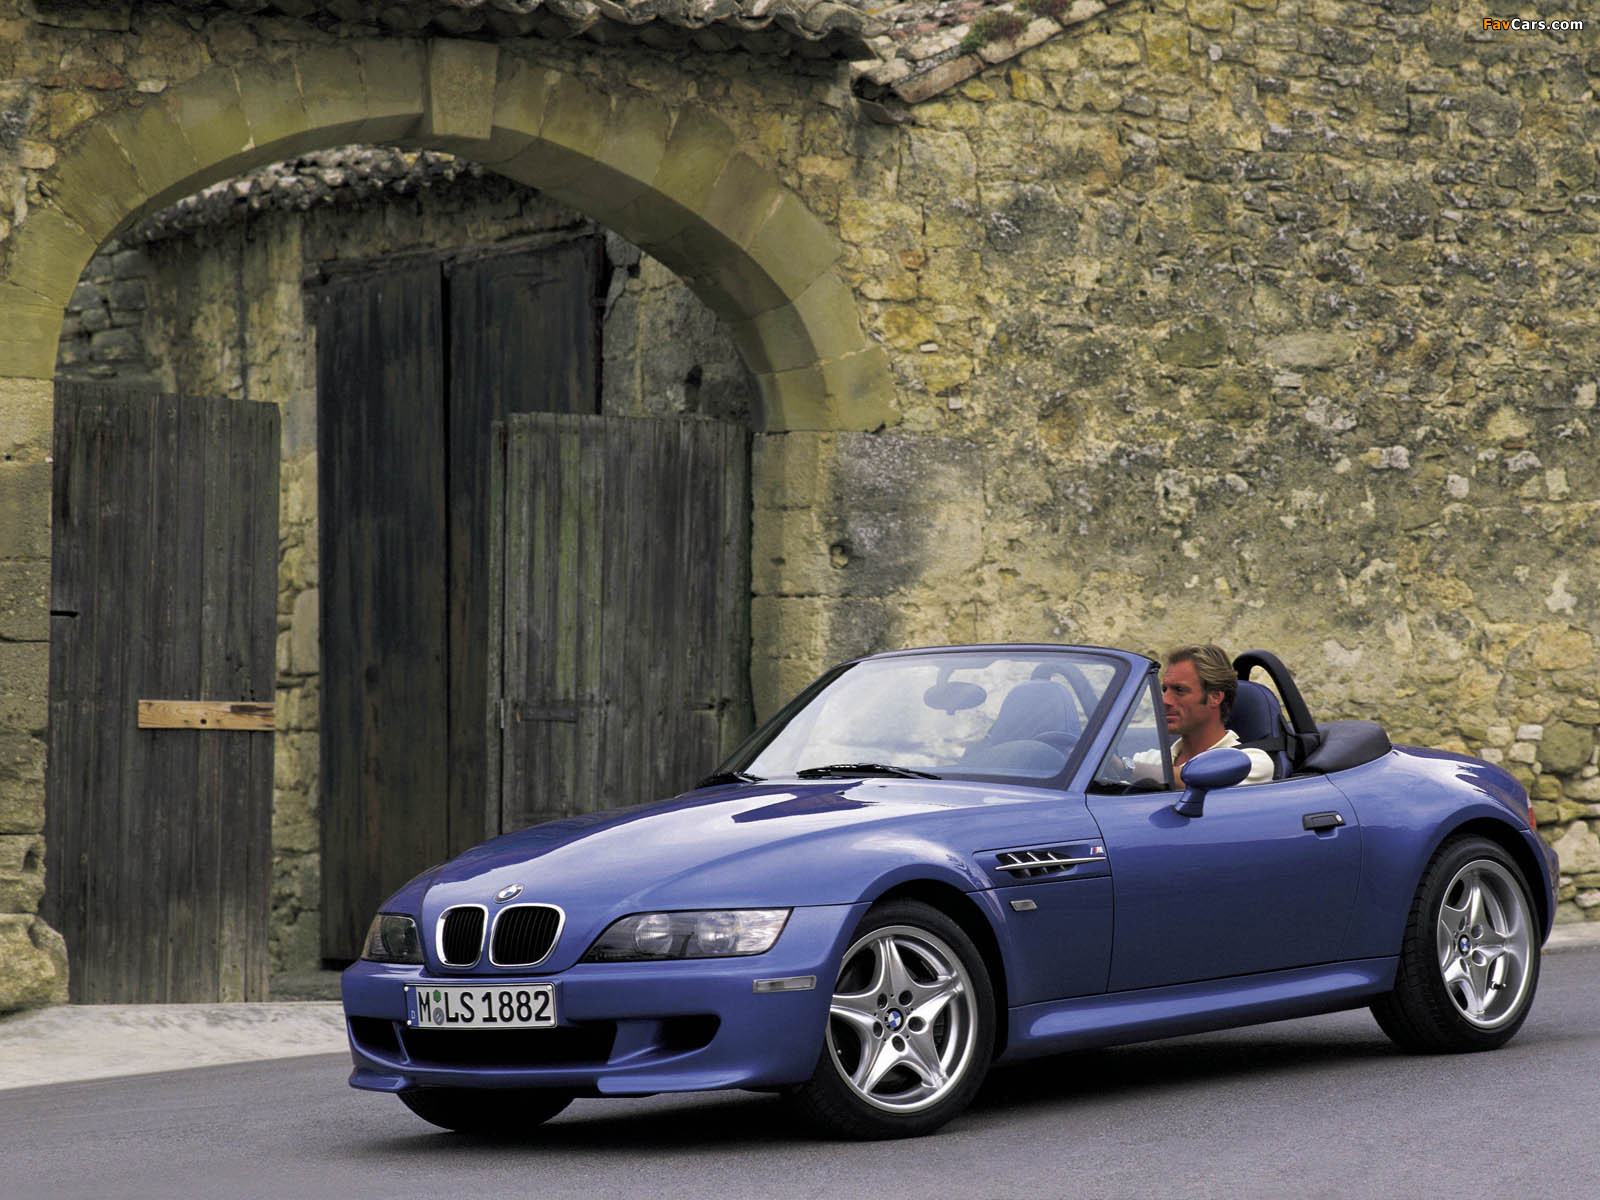 Bmw Z3 M Roadster E36 7 1996 2002 Wallpapers 1600x1200